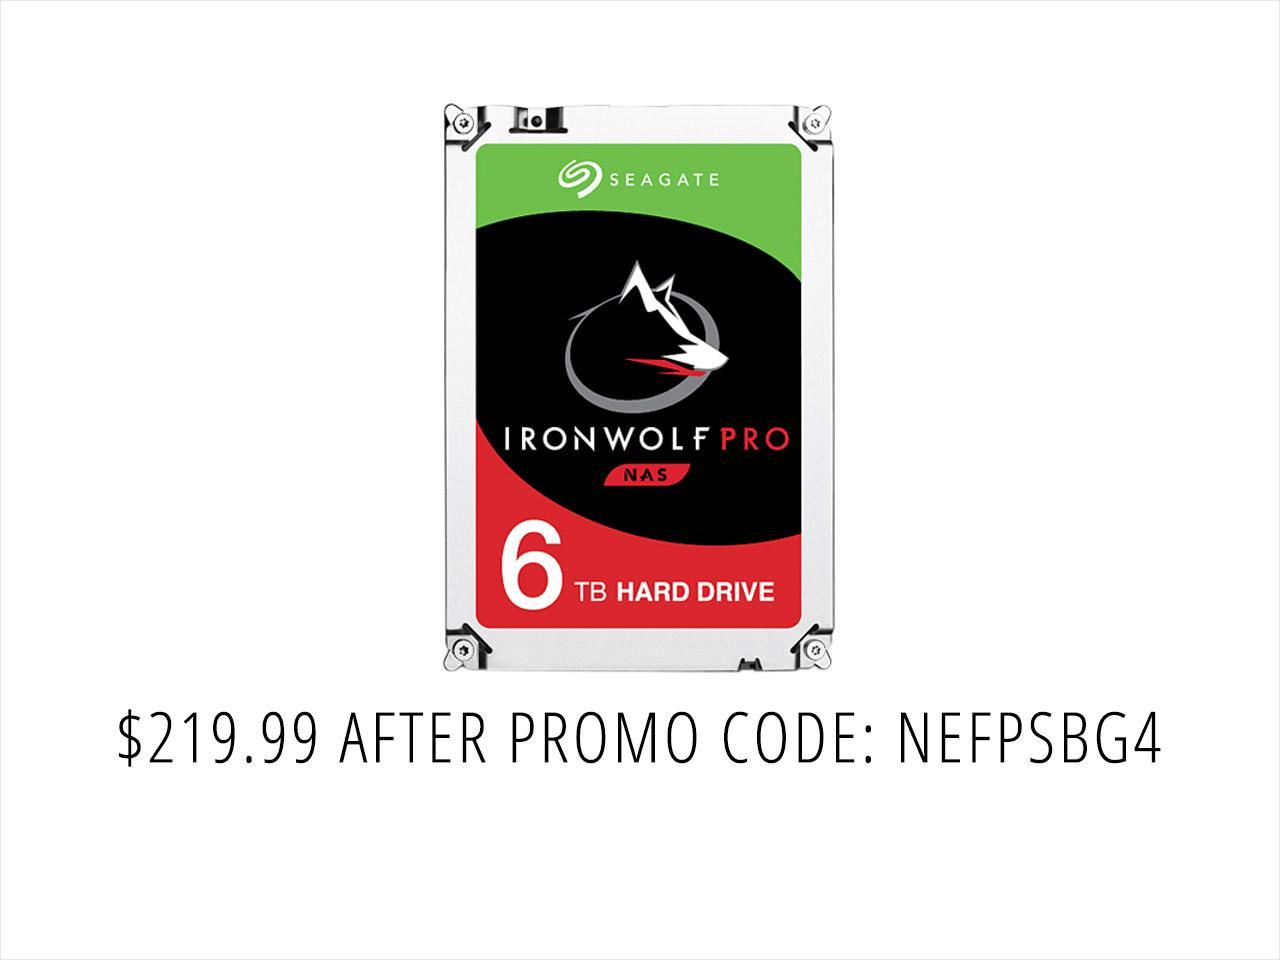 "Seagate IronWolf Pro ST6000NE0021 6TB 7200 RPM 256MB Cache SATA 6.0Gb/s 3.5"" Internal Hard Drive Bare Drive - OEM"